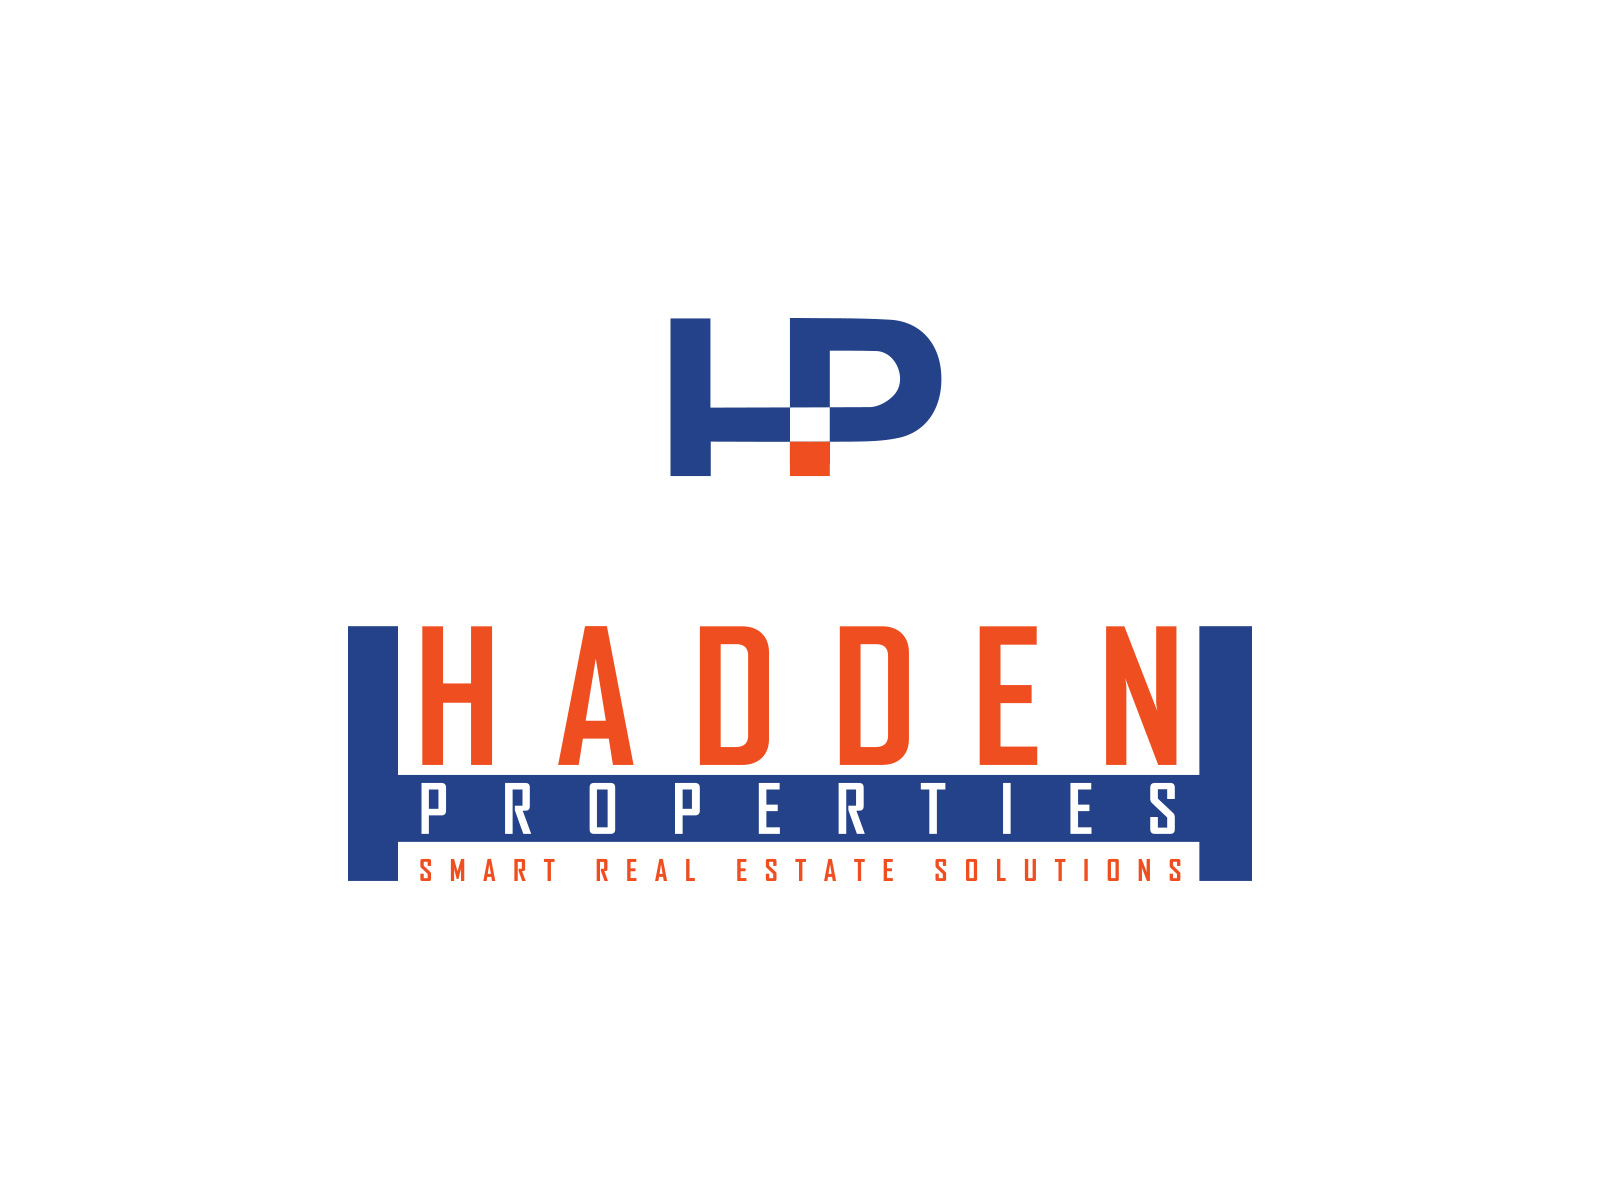 Logo Design by olii - Entry No. 179 in the Logo Design Contest Artistic Logo Design for Hadden Properties.